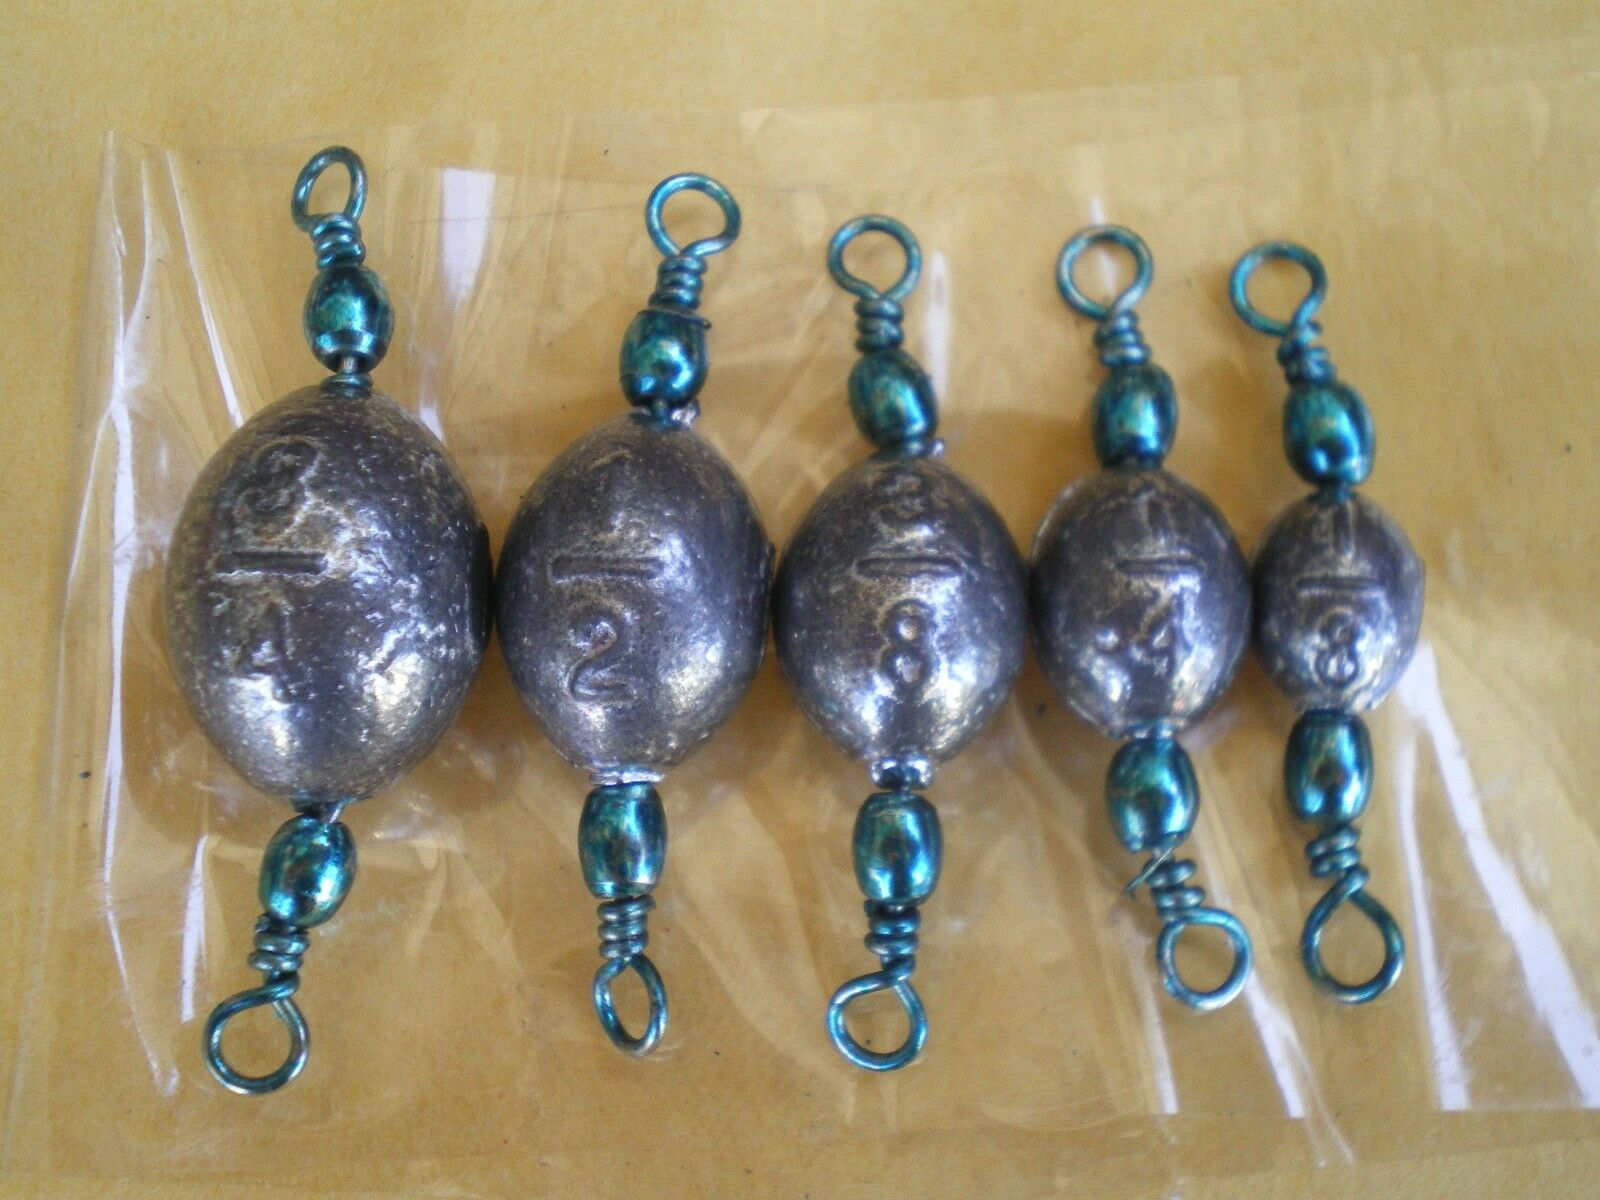 100 PCS. TURQUOISE SWIVEL EGG SINKERS  3 4,1 2,3 8,1 4,1 8 OZ. 20 EA. Q  STRIPER   top brands sell cheap